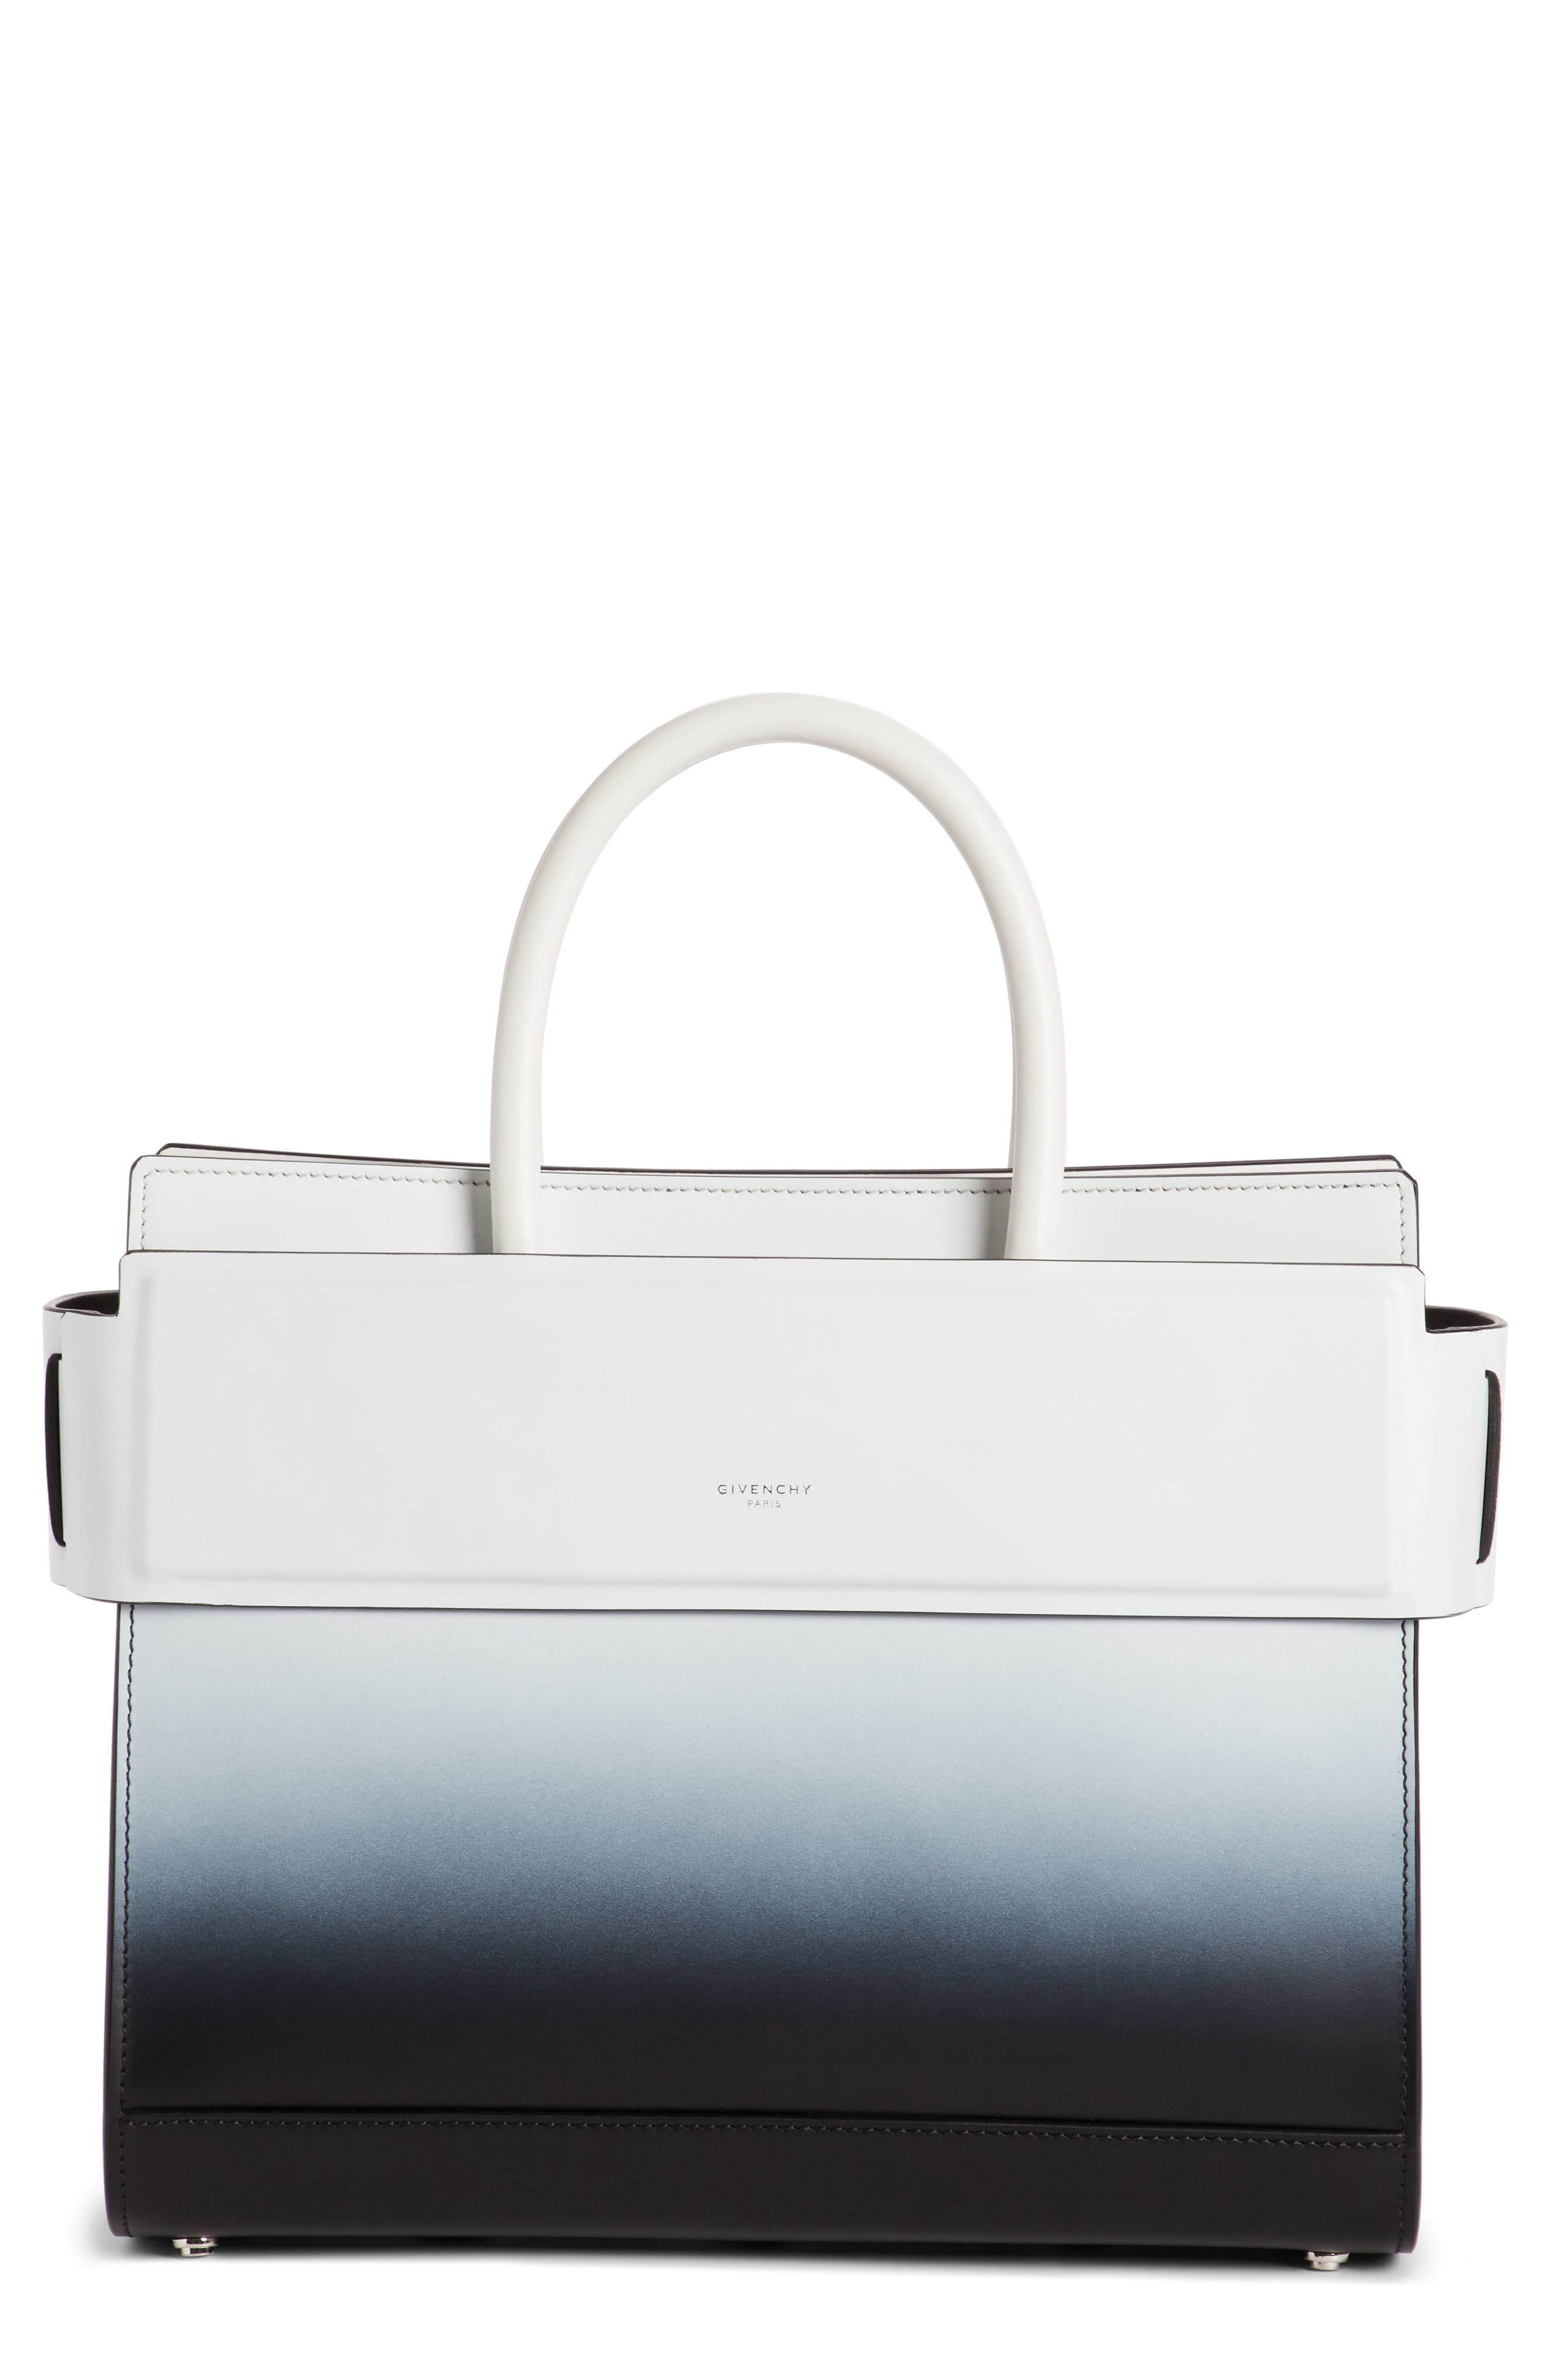 Givenchy Small Horizon Dégradé Leather Tote